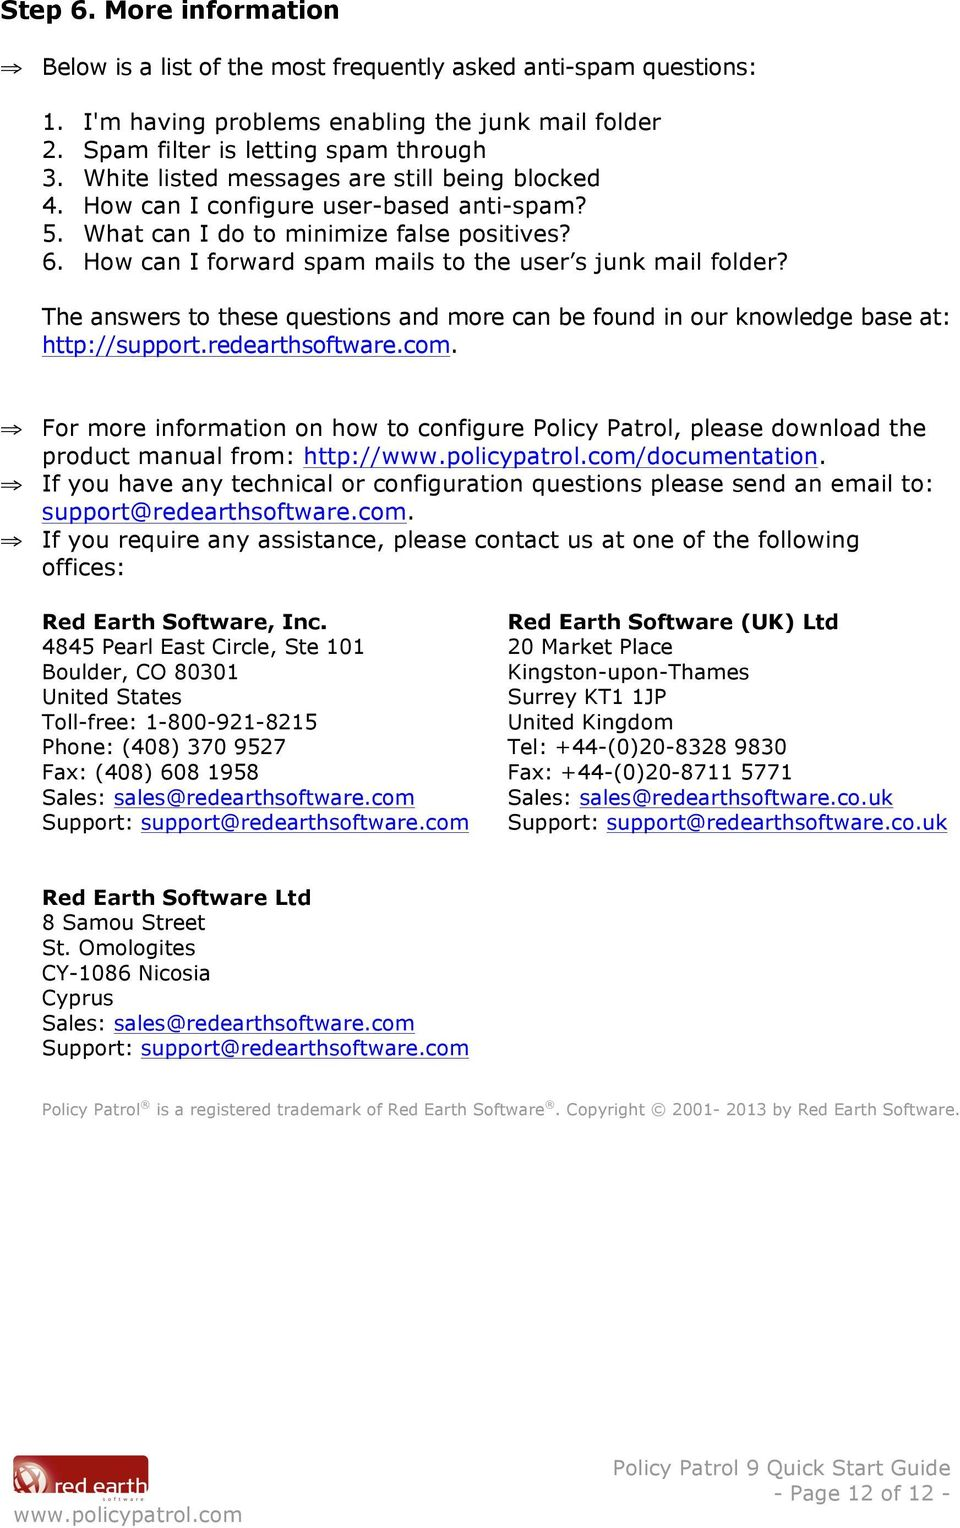 The answers to these questions and more can be found in our knowledge base at: http://support.redearthsoftware.com.